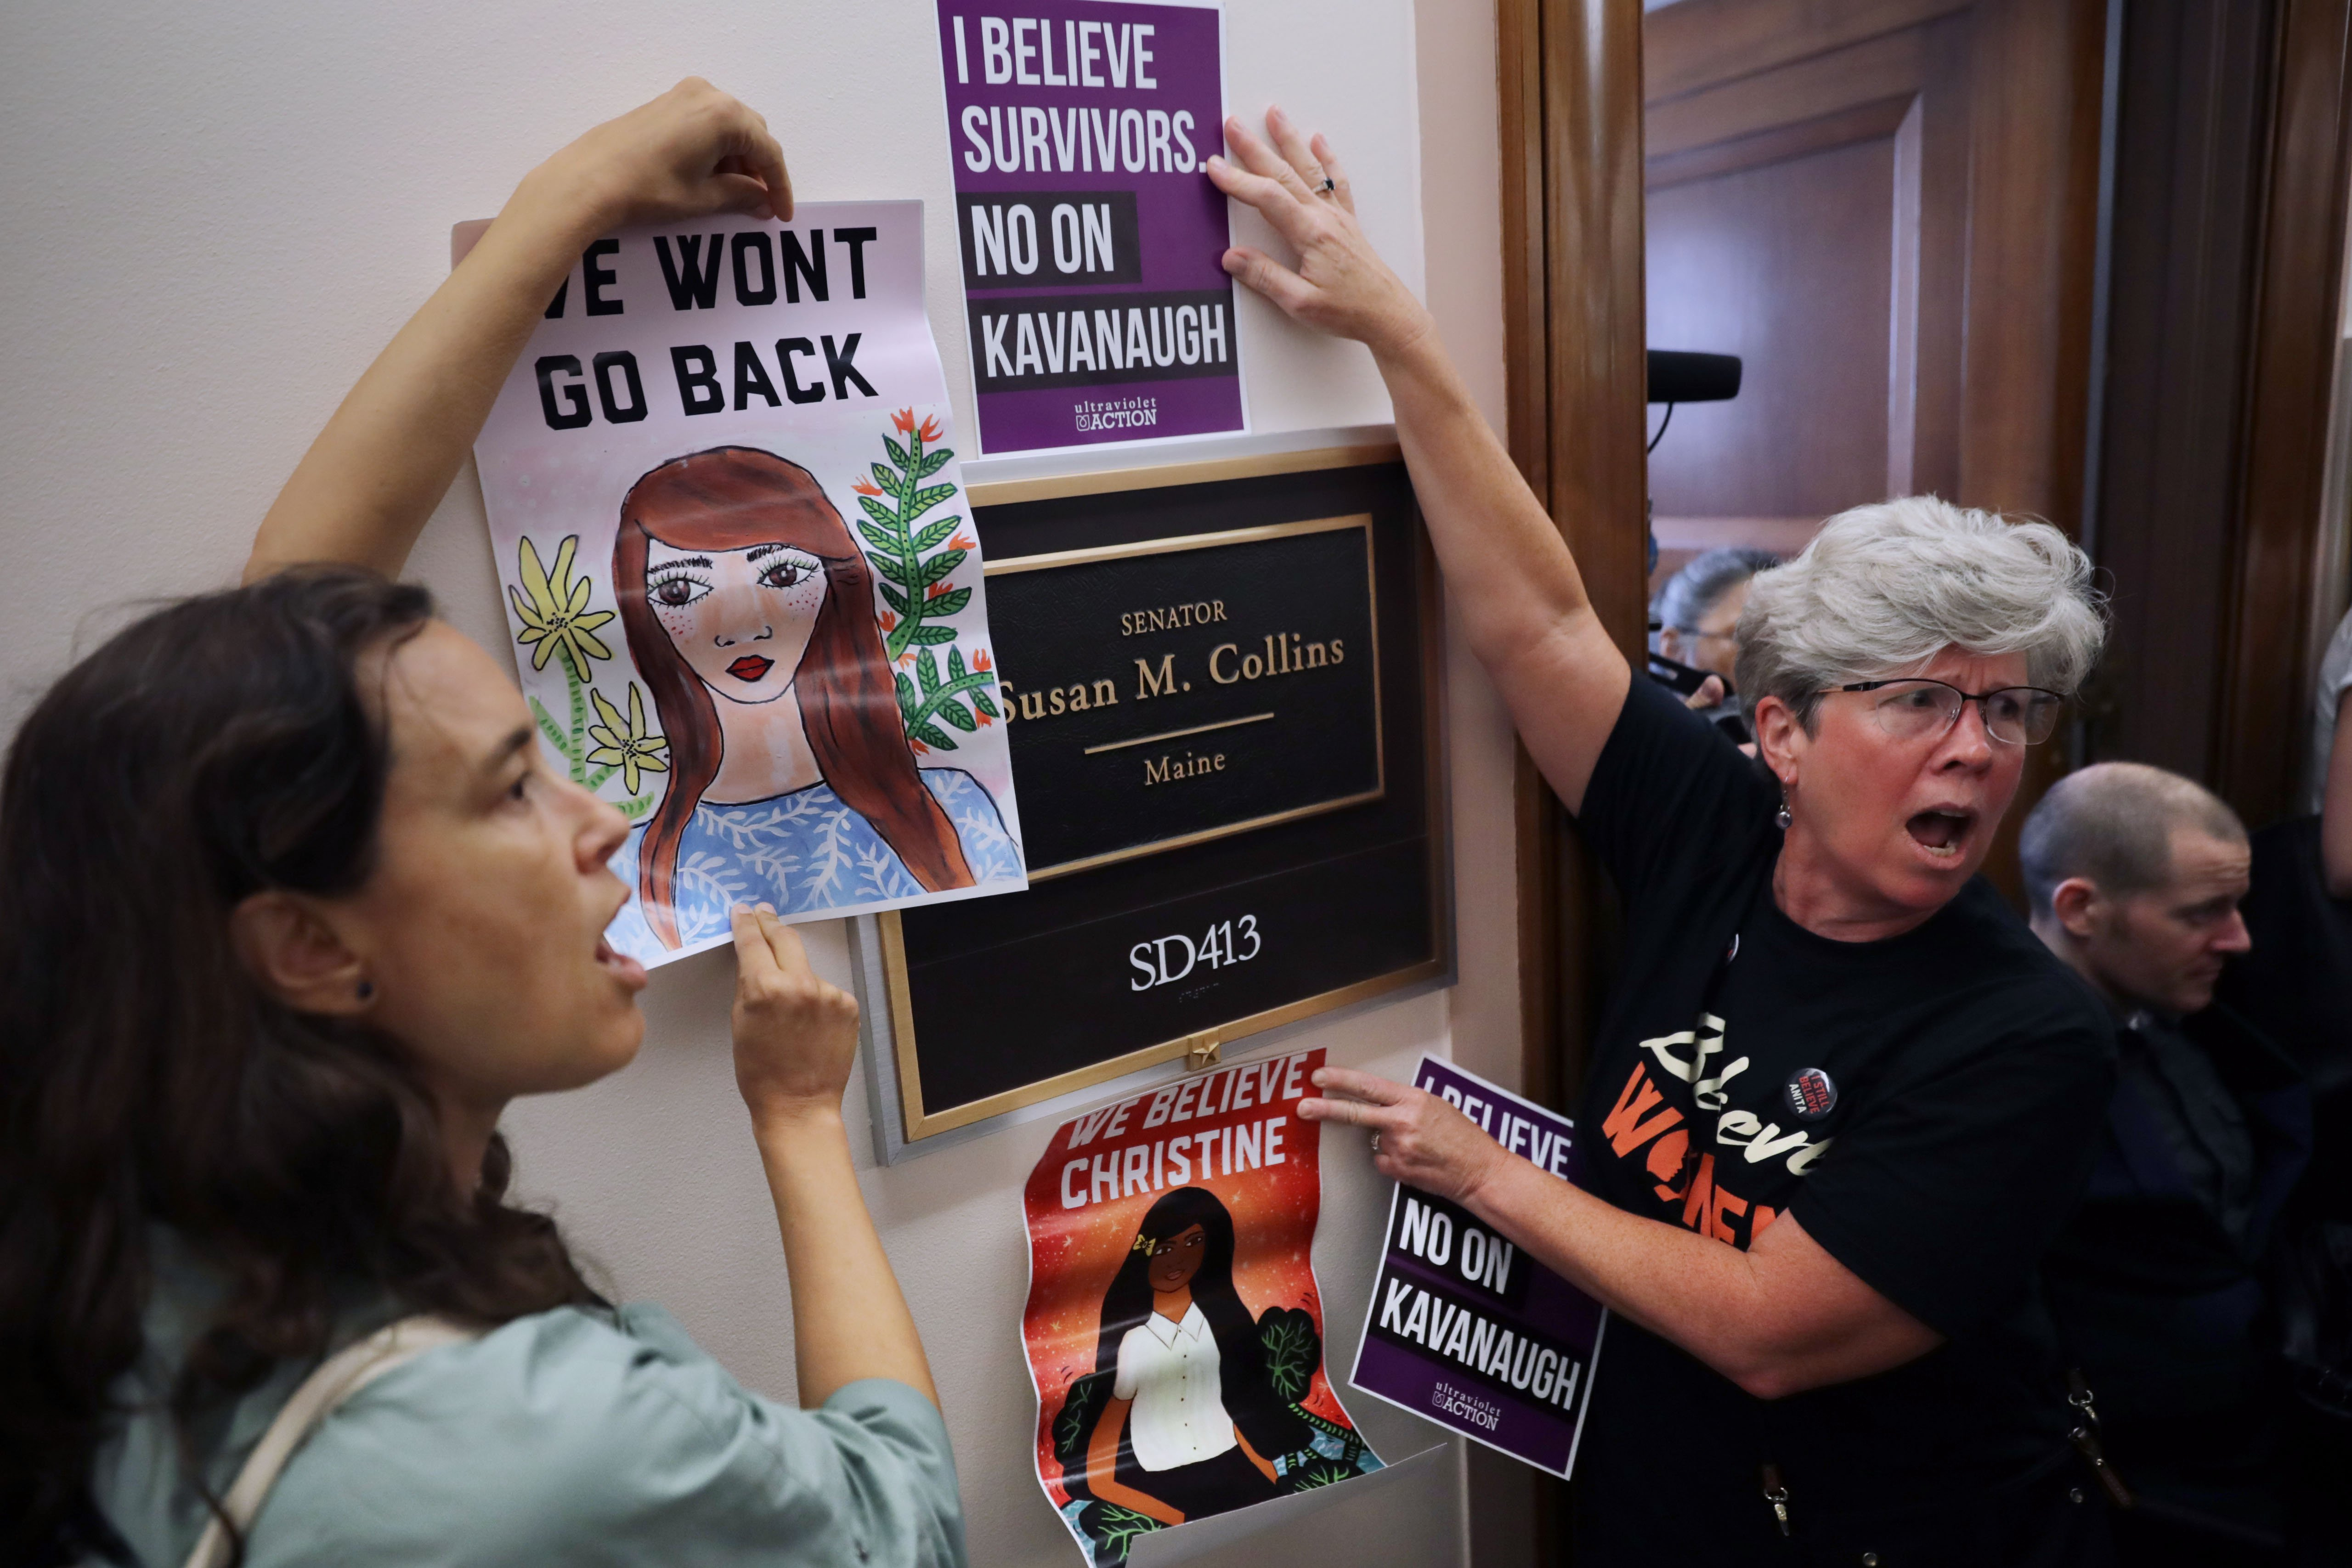 Dozens of protesters demonstrate against the appointment Brett Kavanaugh outside the offices of Sen. Susan Collins (R-ME) in the Dirksen Senate Office Building on Capitol Hill September 26, 2018. (Chip Somodevilla/Getty Images)